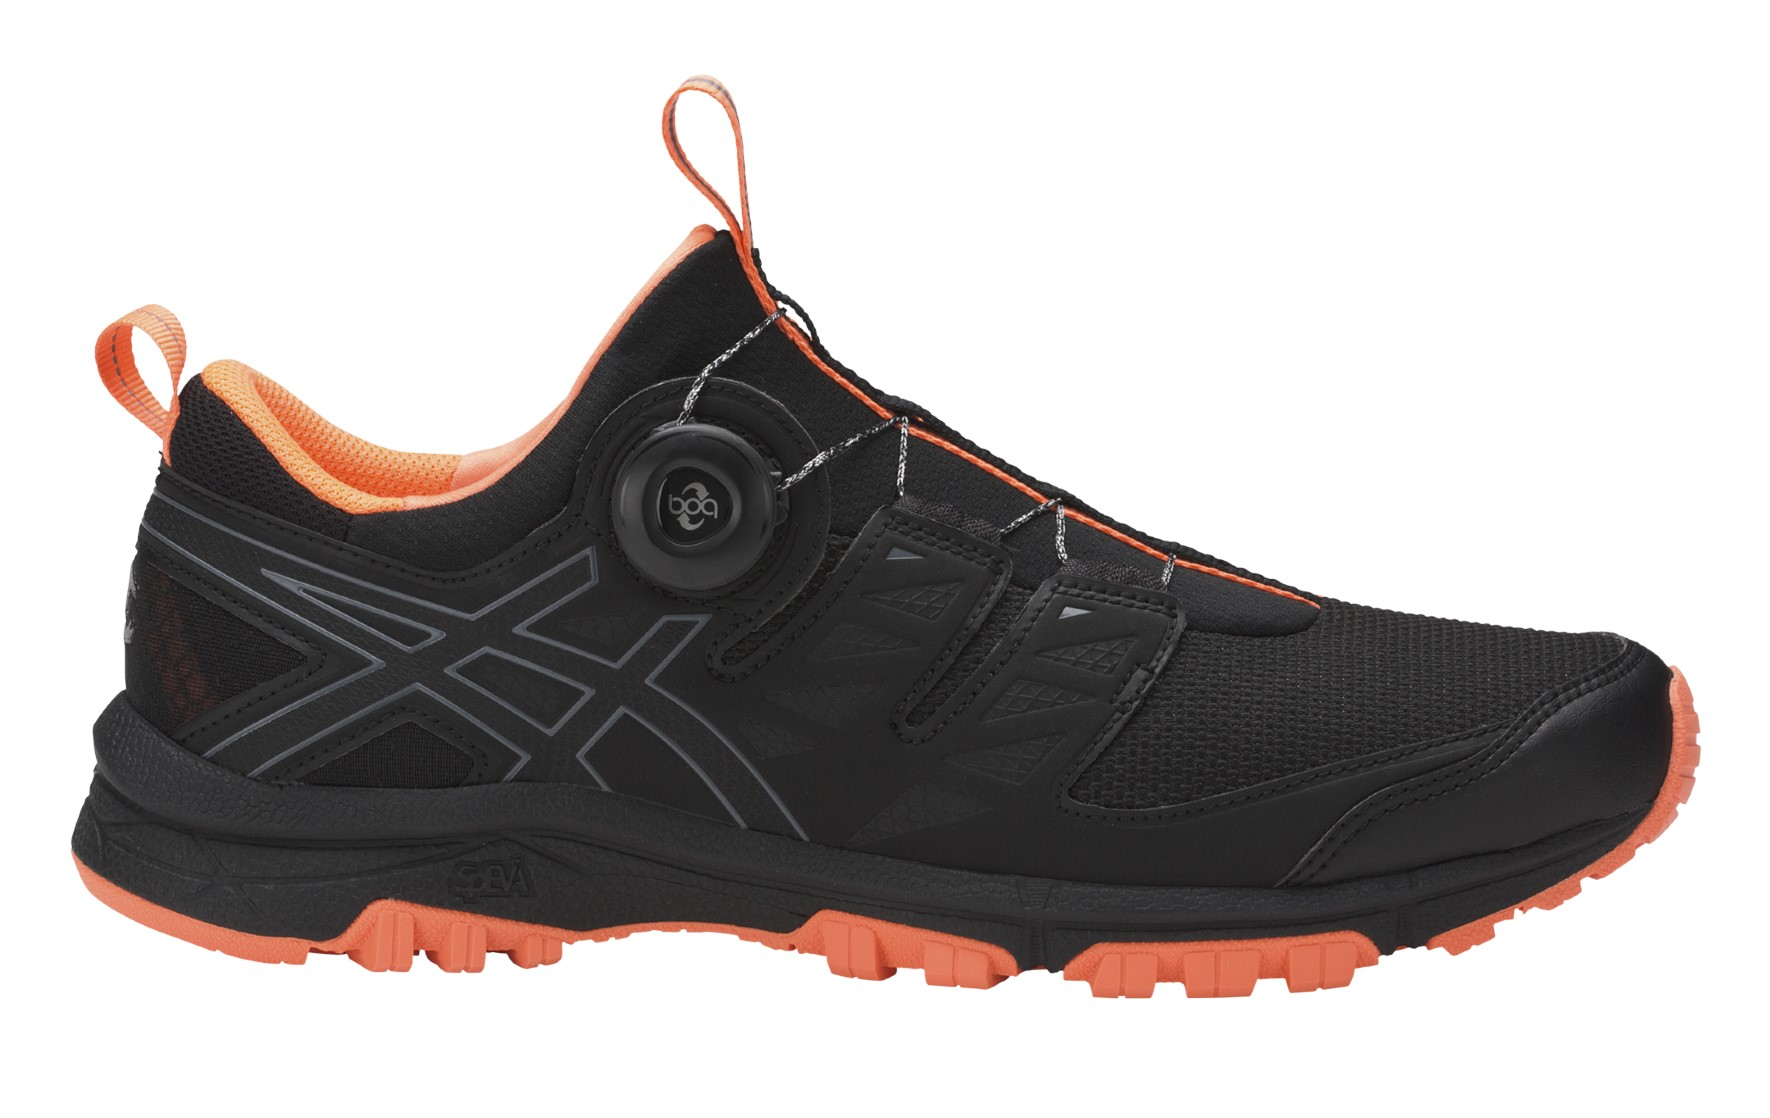 ASICS ZAPATILLA Frontera popular